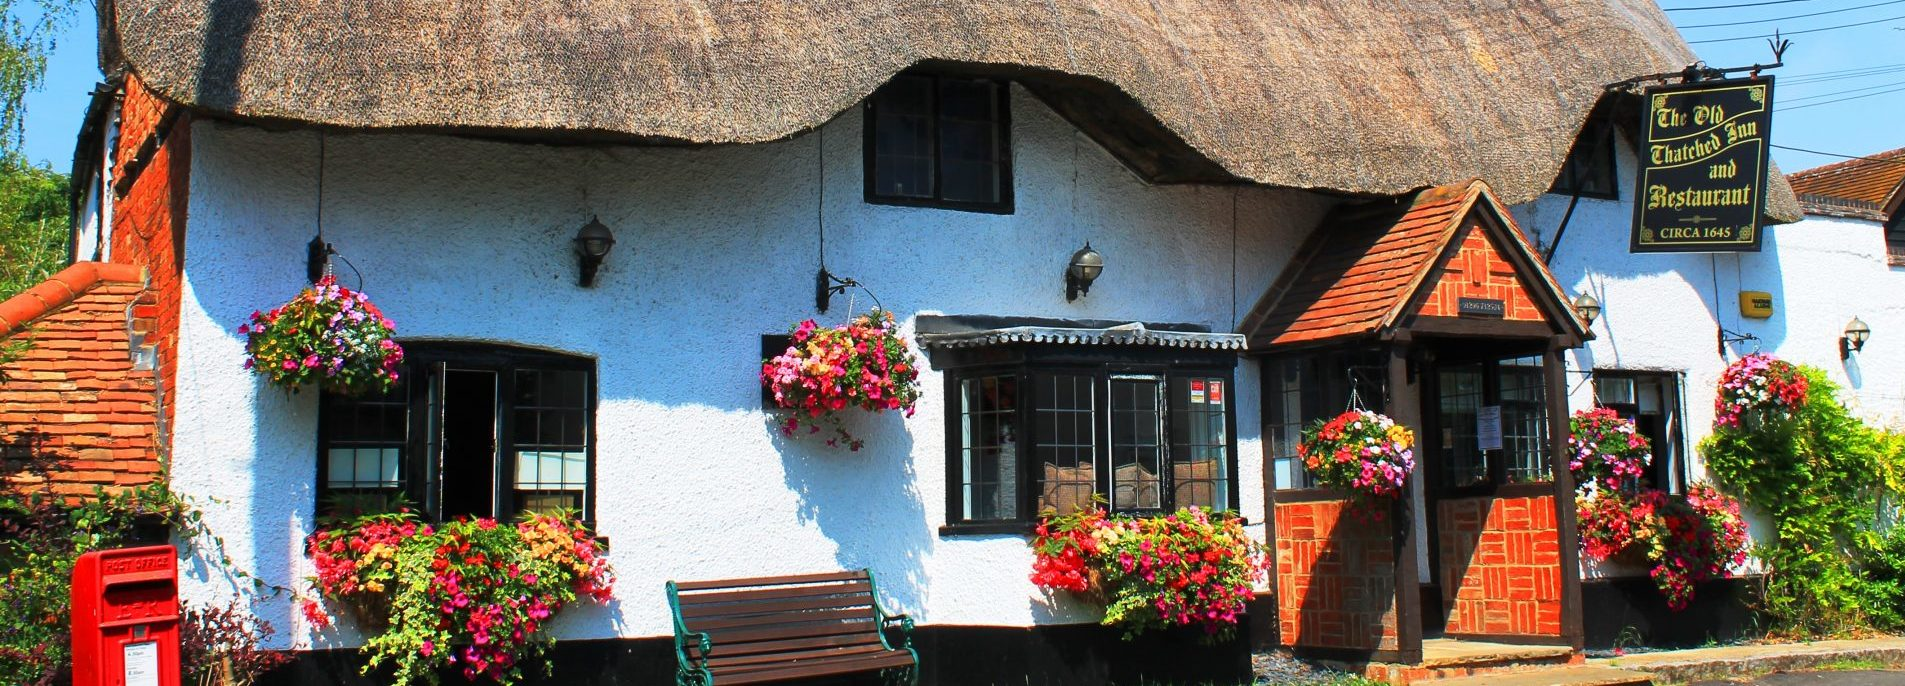 Old Thatched Inn, Adstock